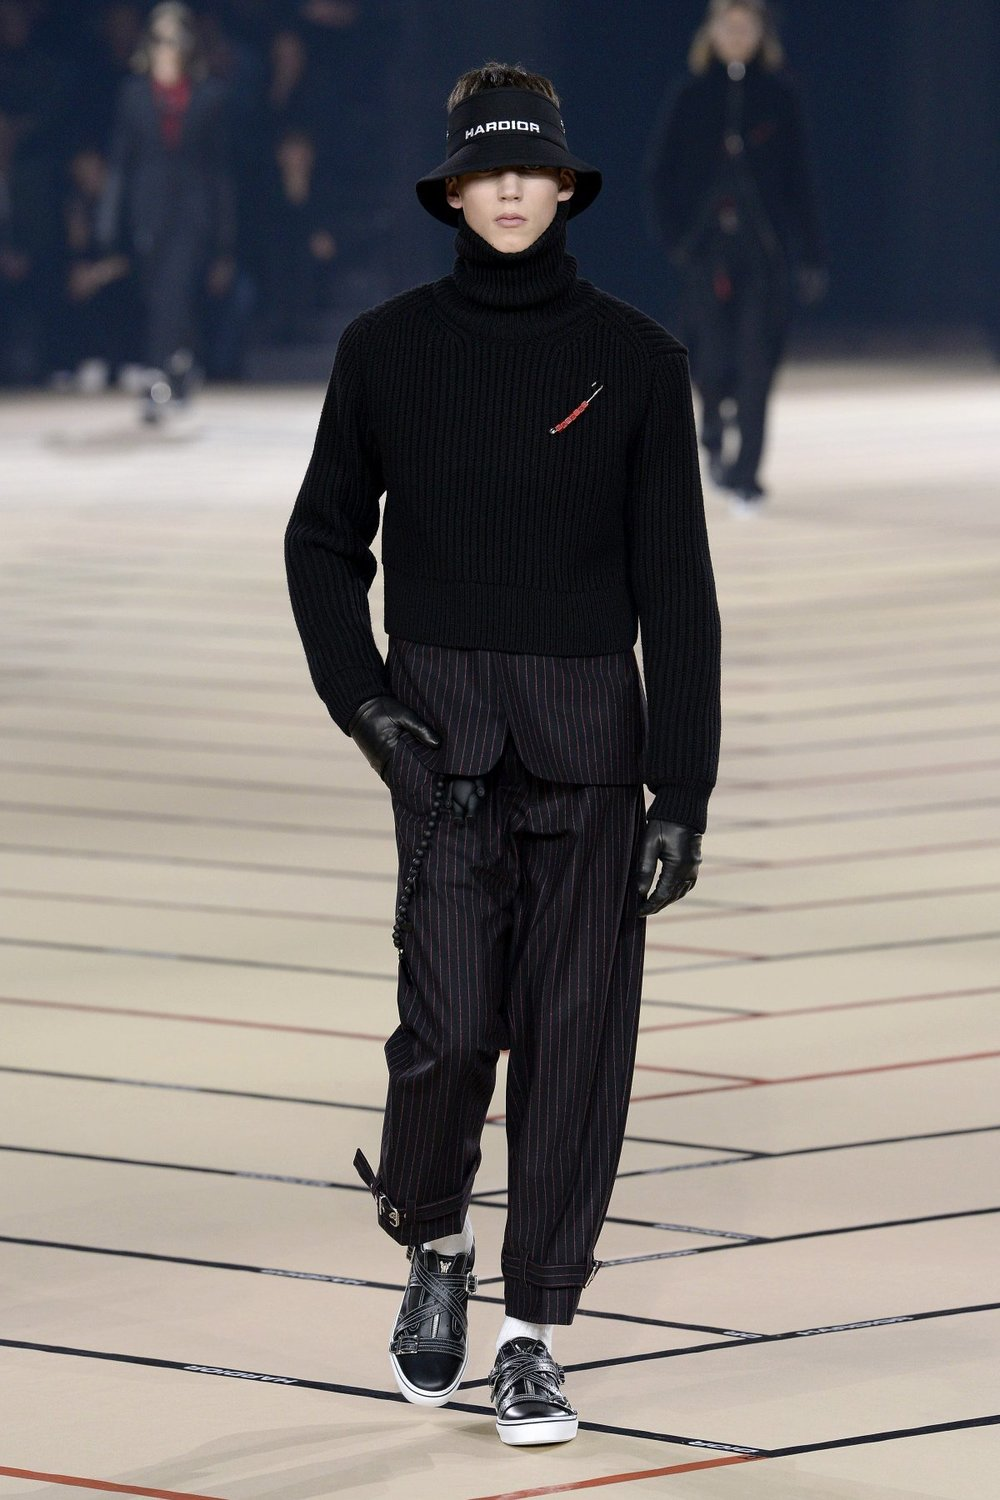 dior_homme_look_6_2017_aw_mens.jpeg